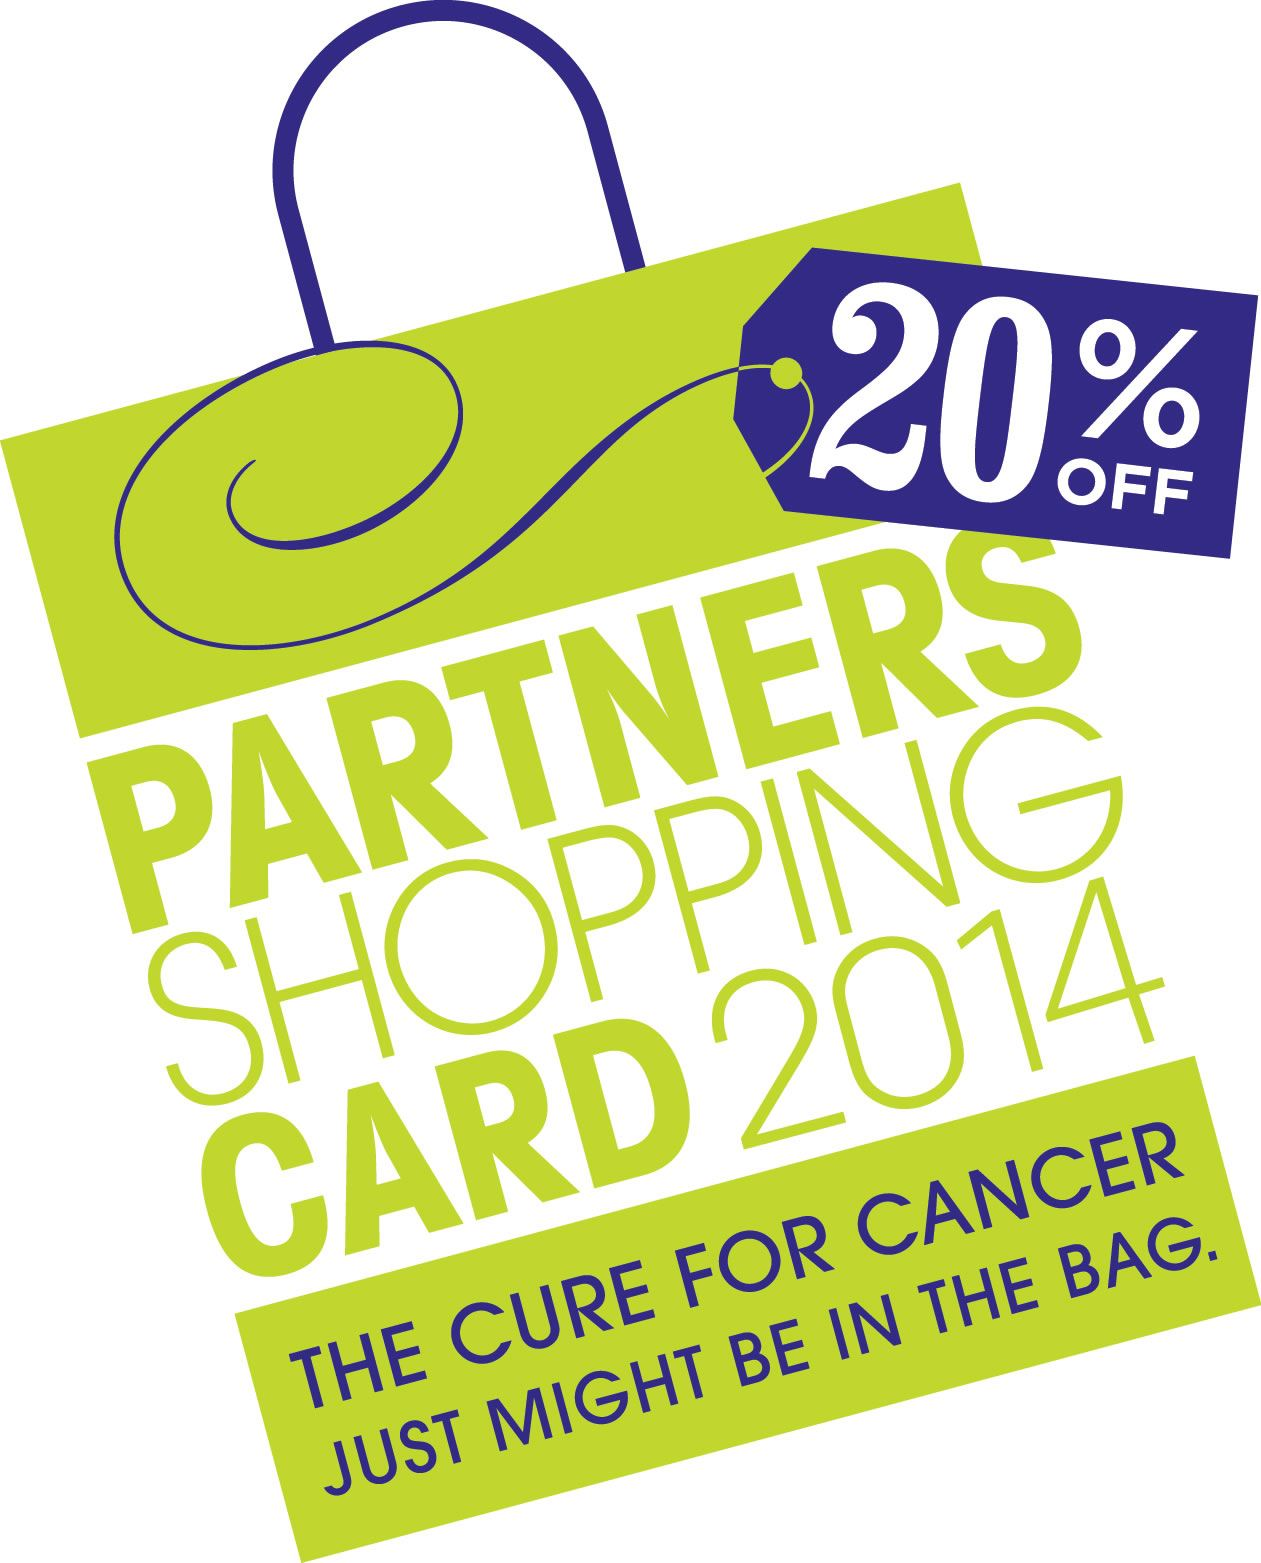 Partners Shopping Card Saves You 20% at One of Your Favorite